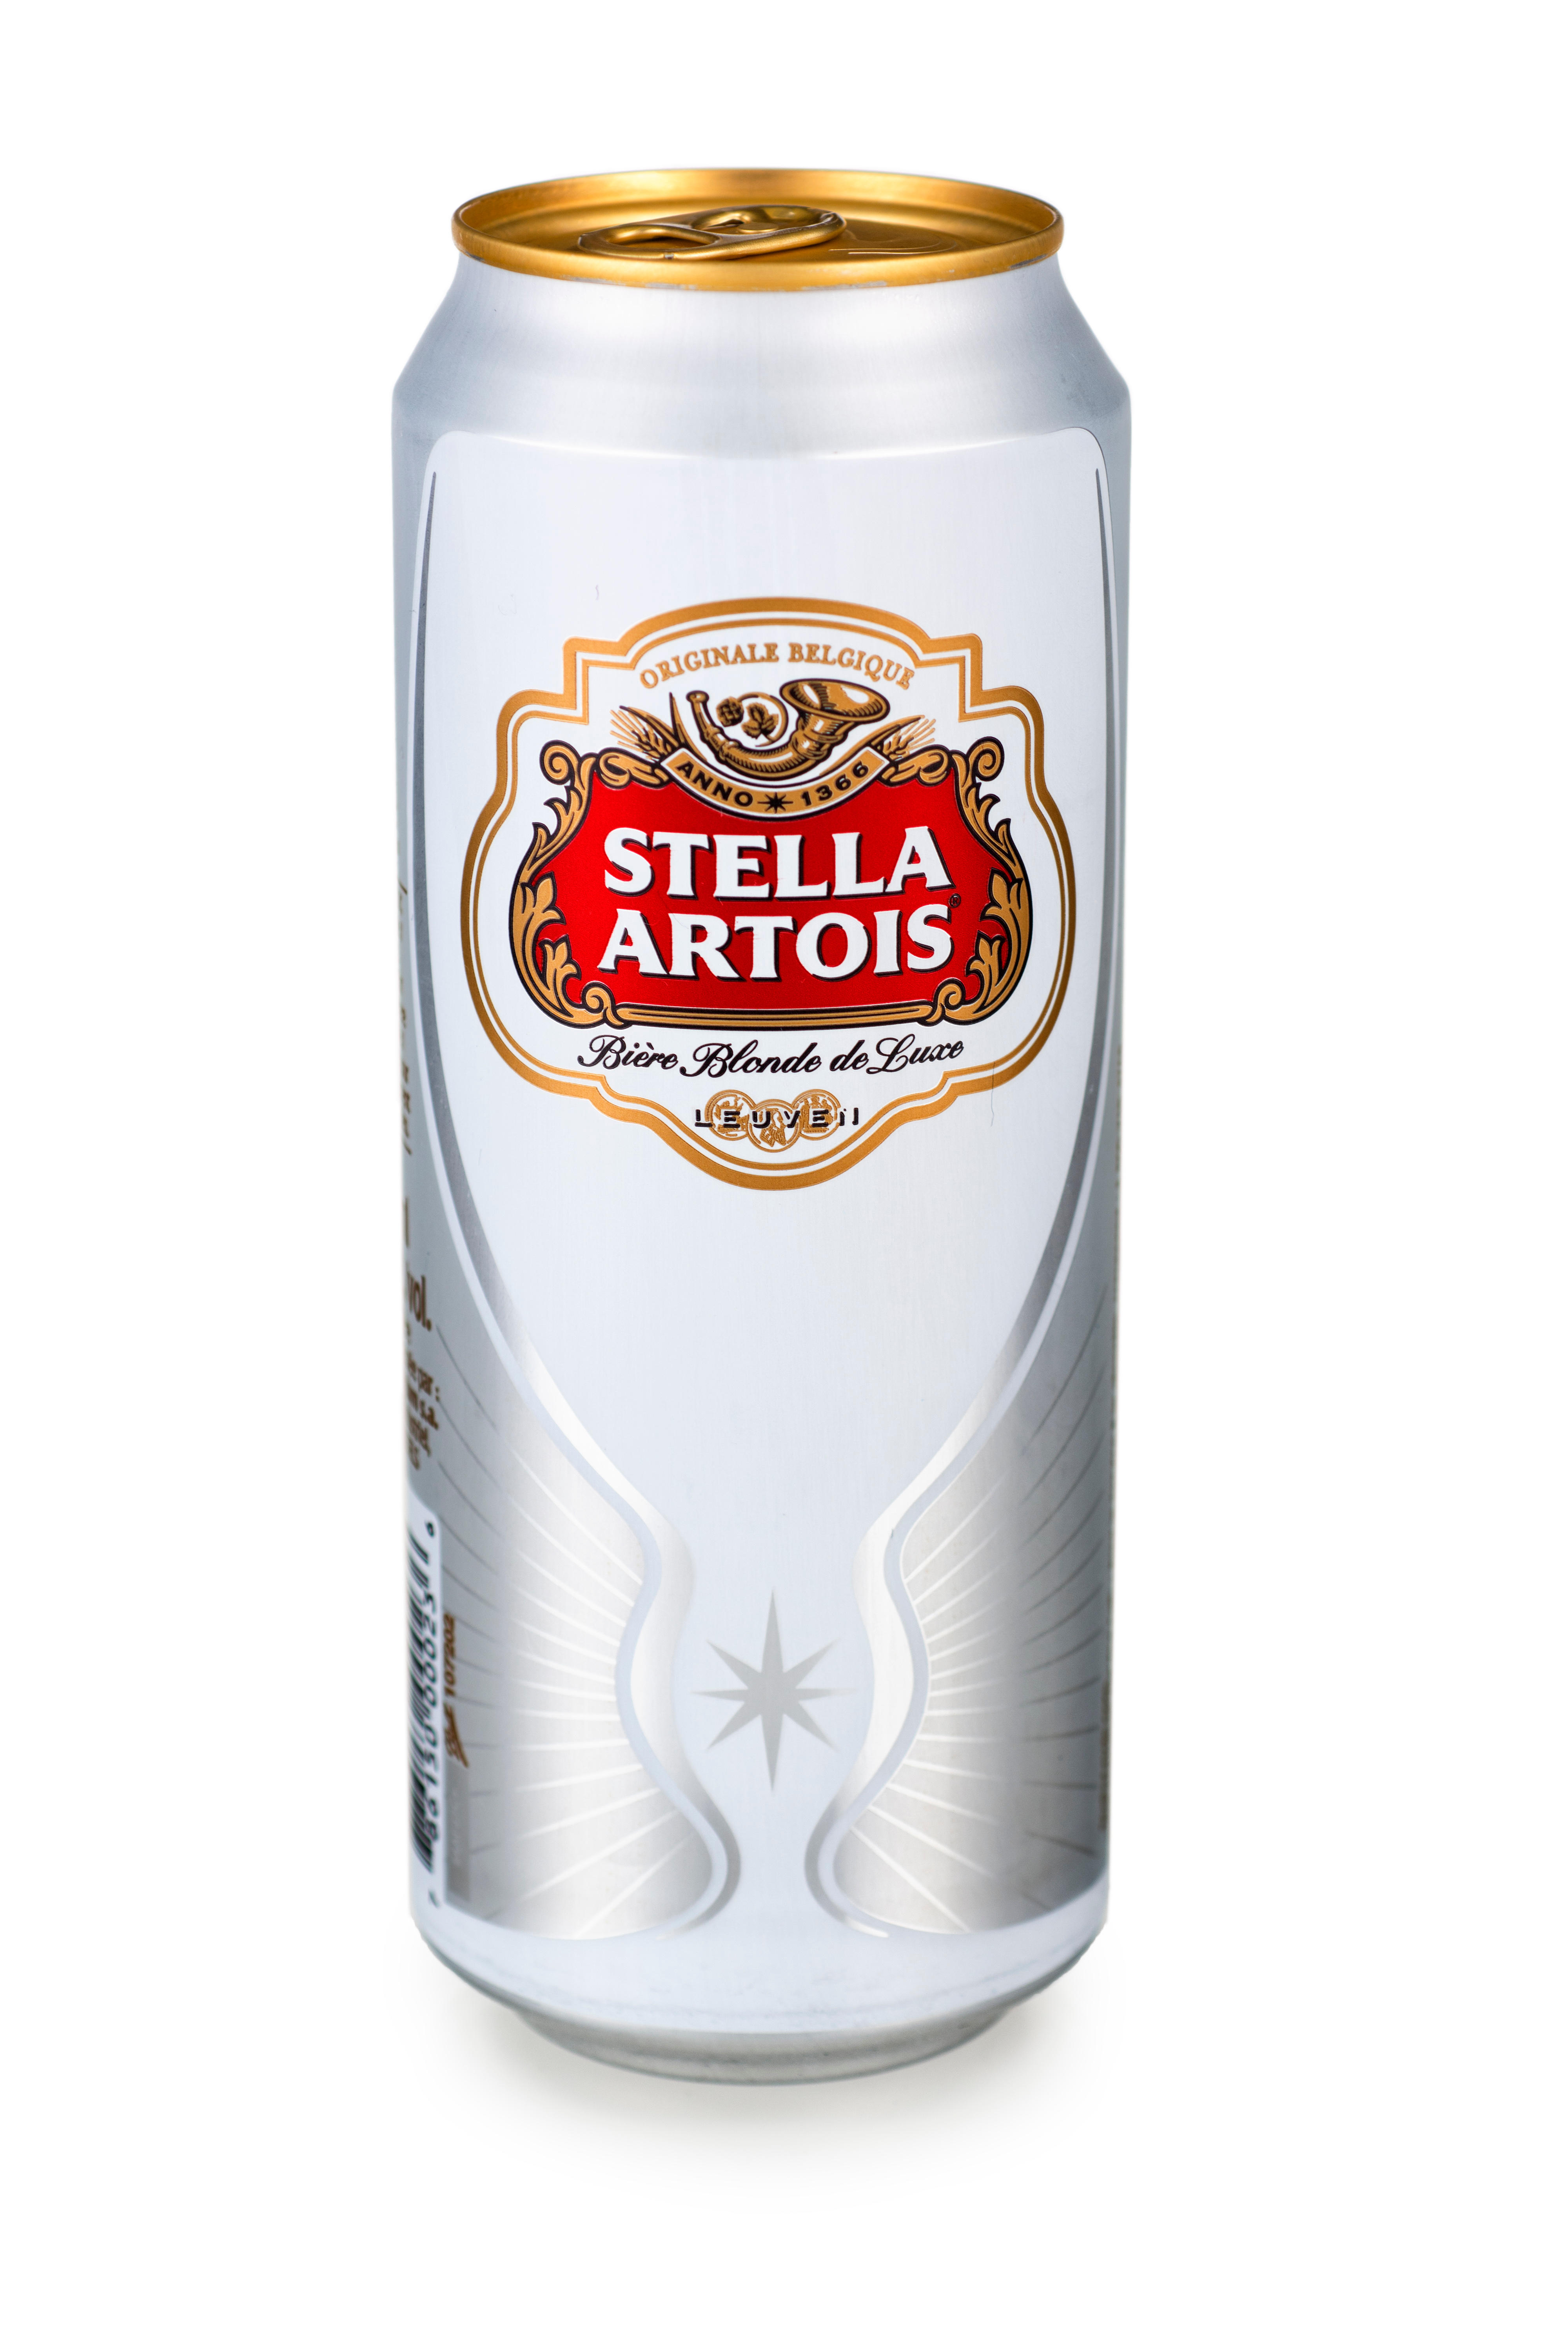 In the last 10 years Stella Artois has dropped alcohol content from 5.0% to 4.6%